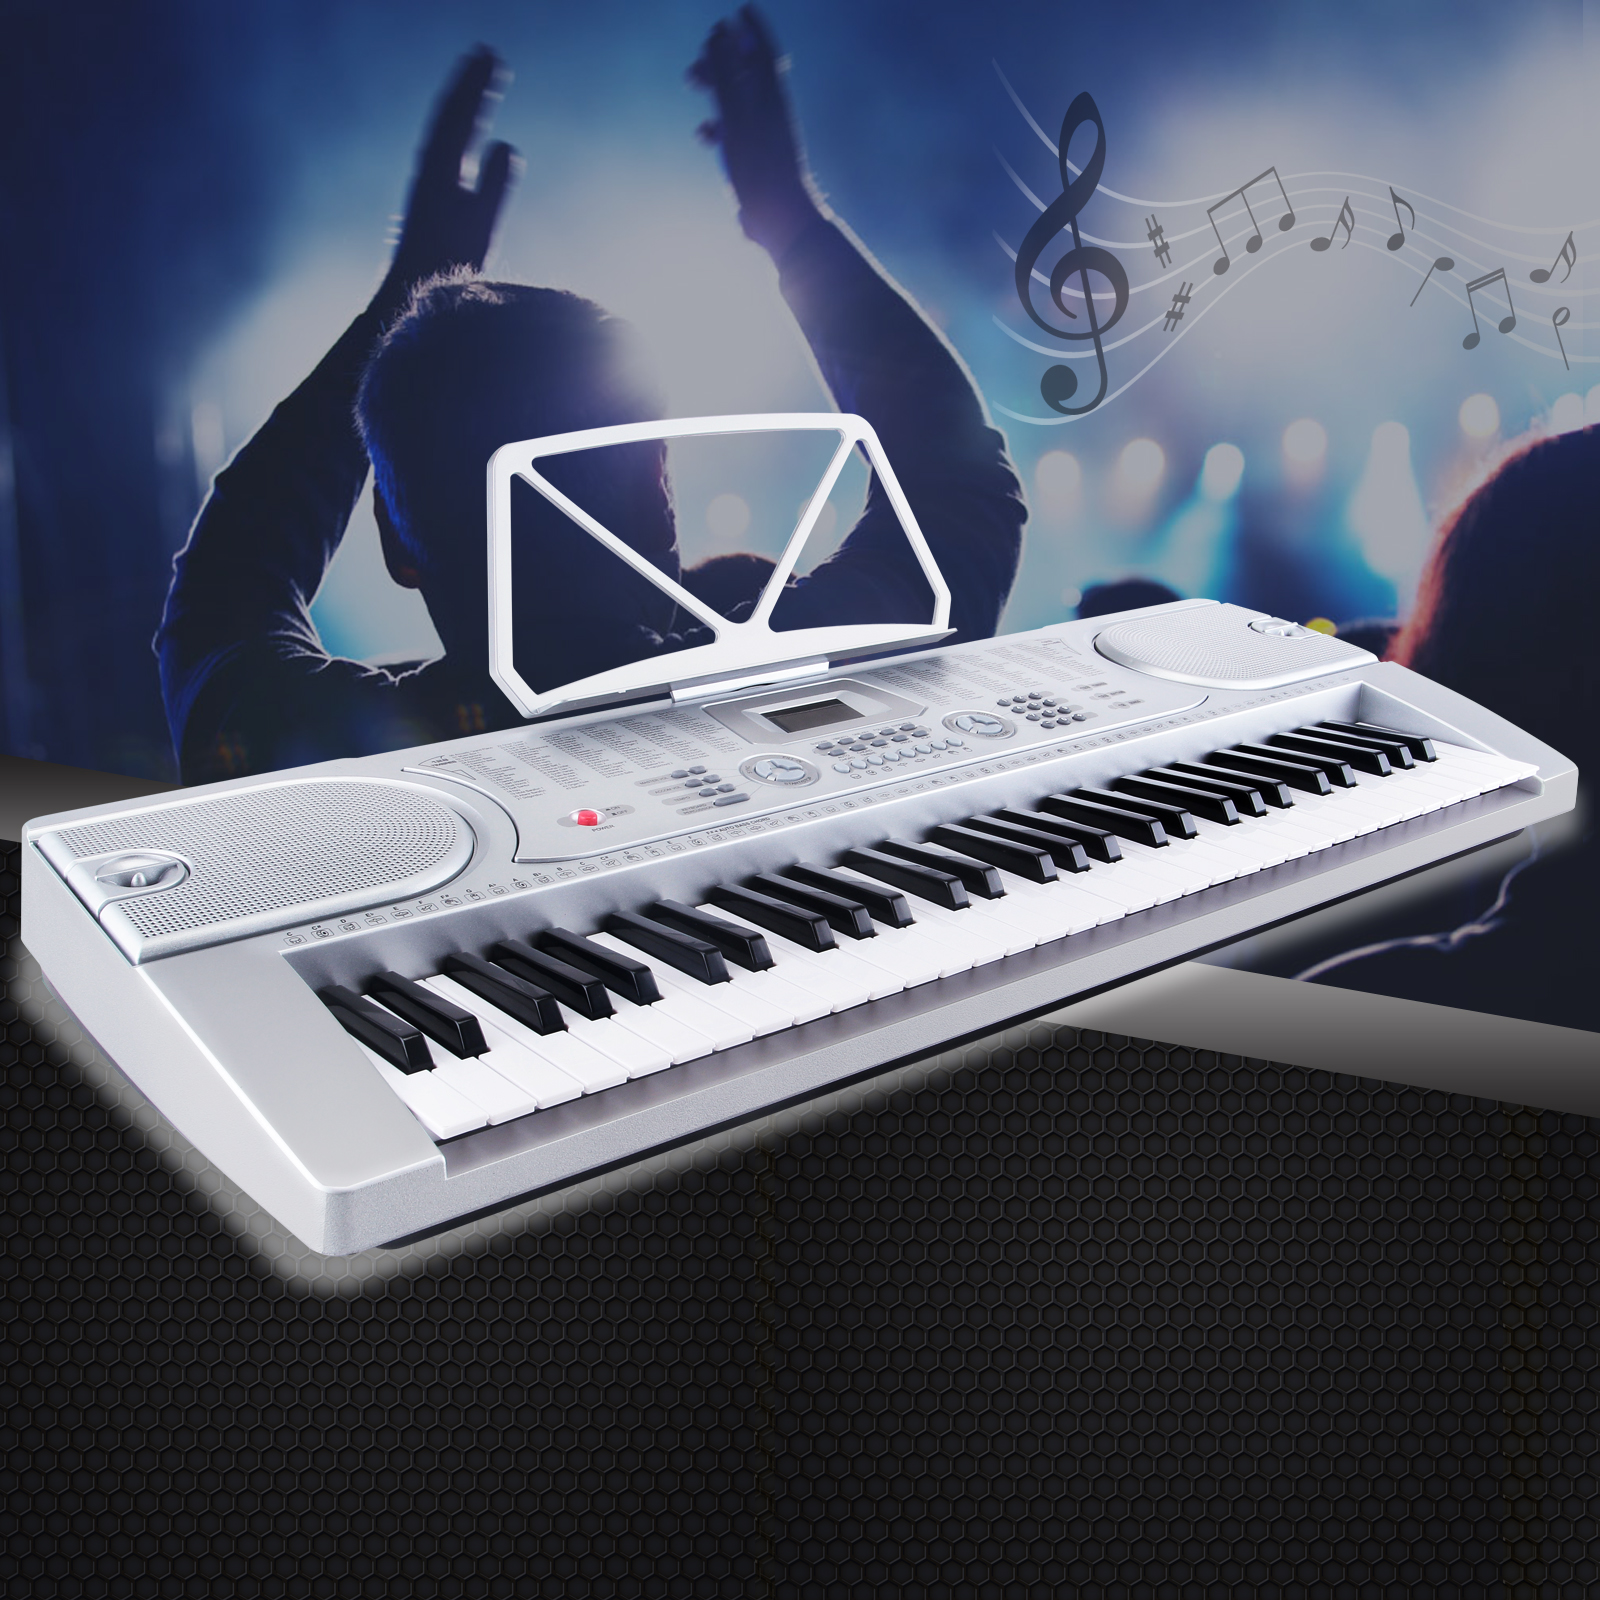 Uenjoy 61 Key Music Electronic Keyboard Digital Piano Organ w/Microphone/Power Supply,Silver